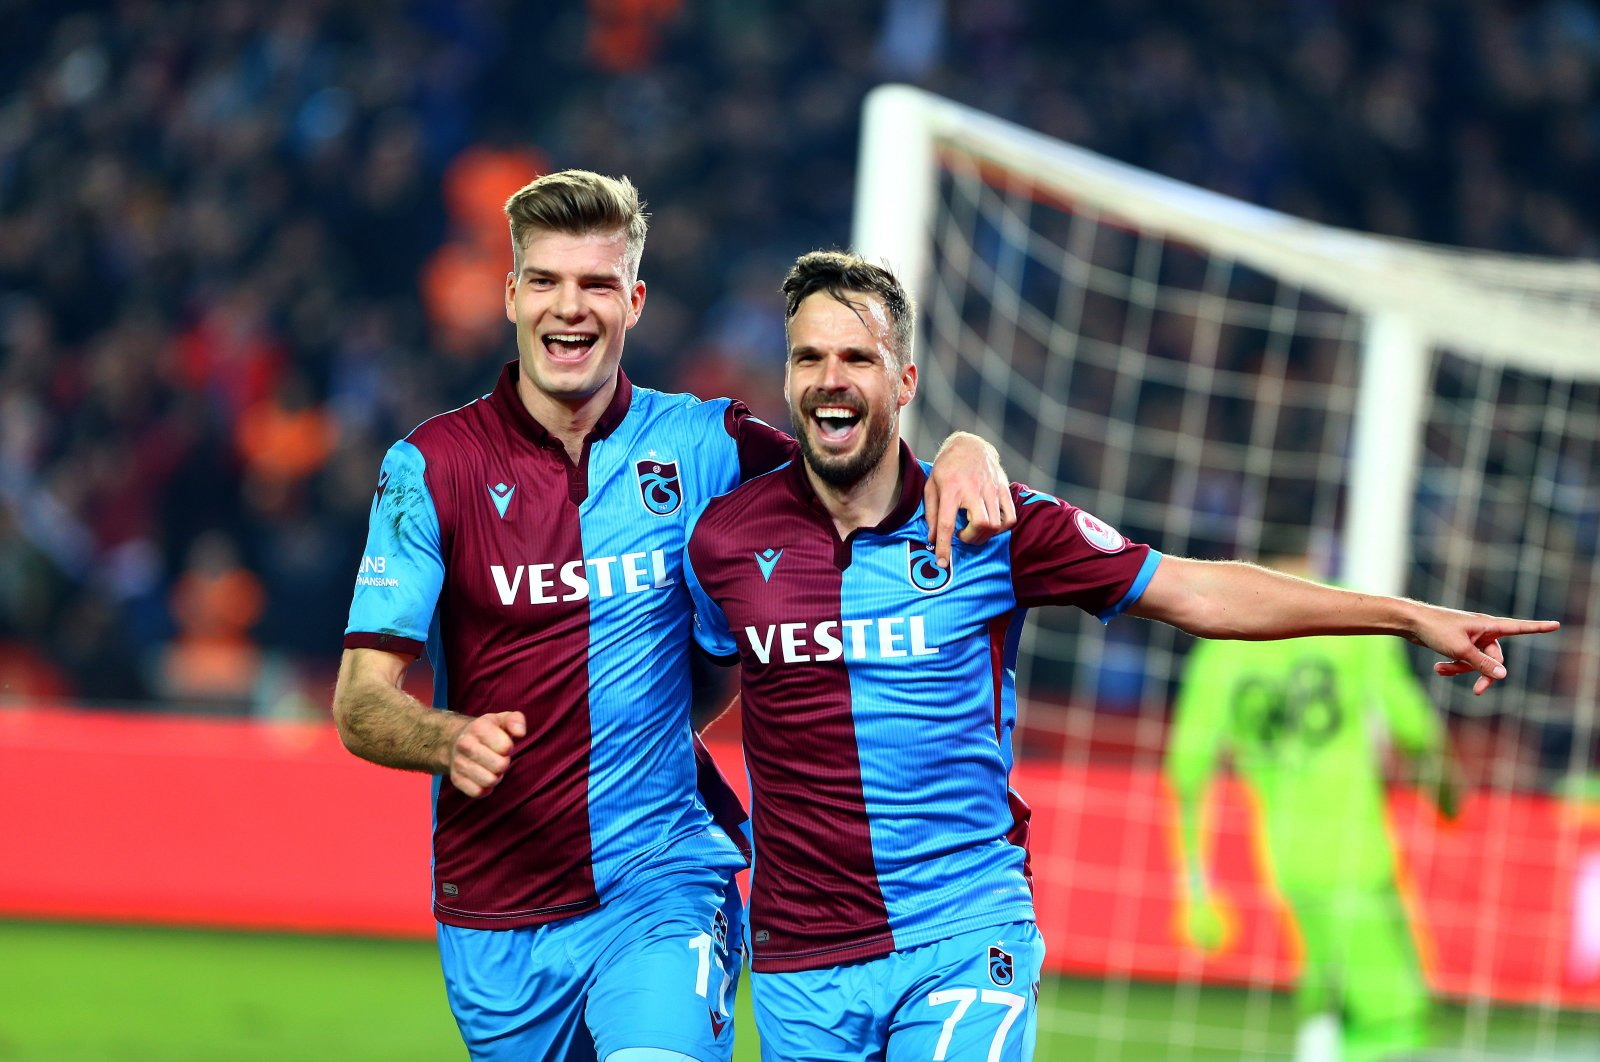 Trabzonspor's Alexander Sorloth and Filip Novak celebrate a goal during Ziraat Turkish Cup match against Fenerbahçe in Trabzon, Turkey, March 3, 2020.